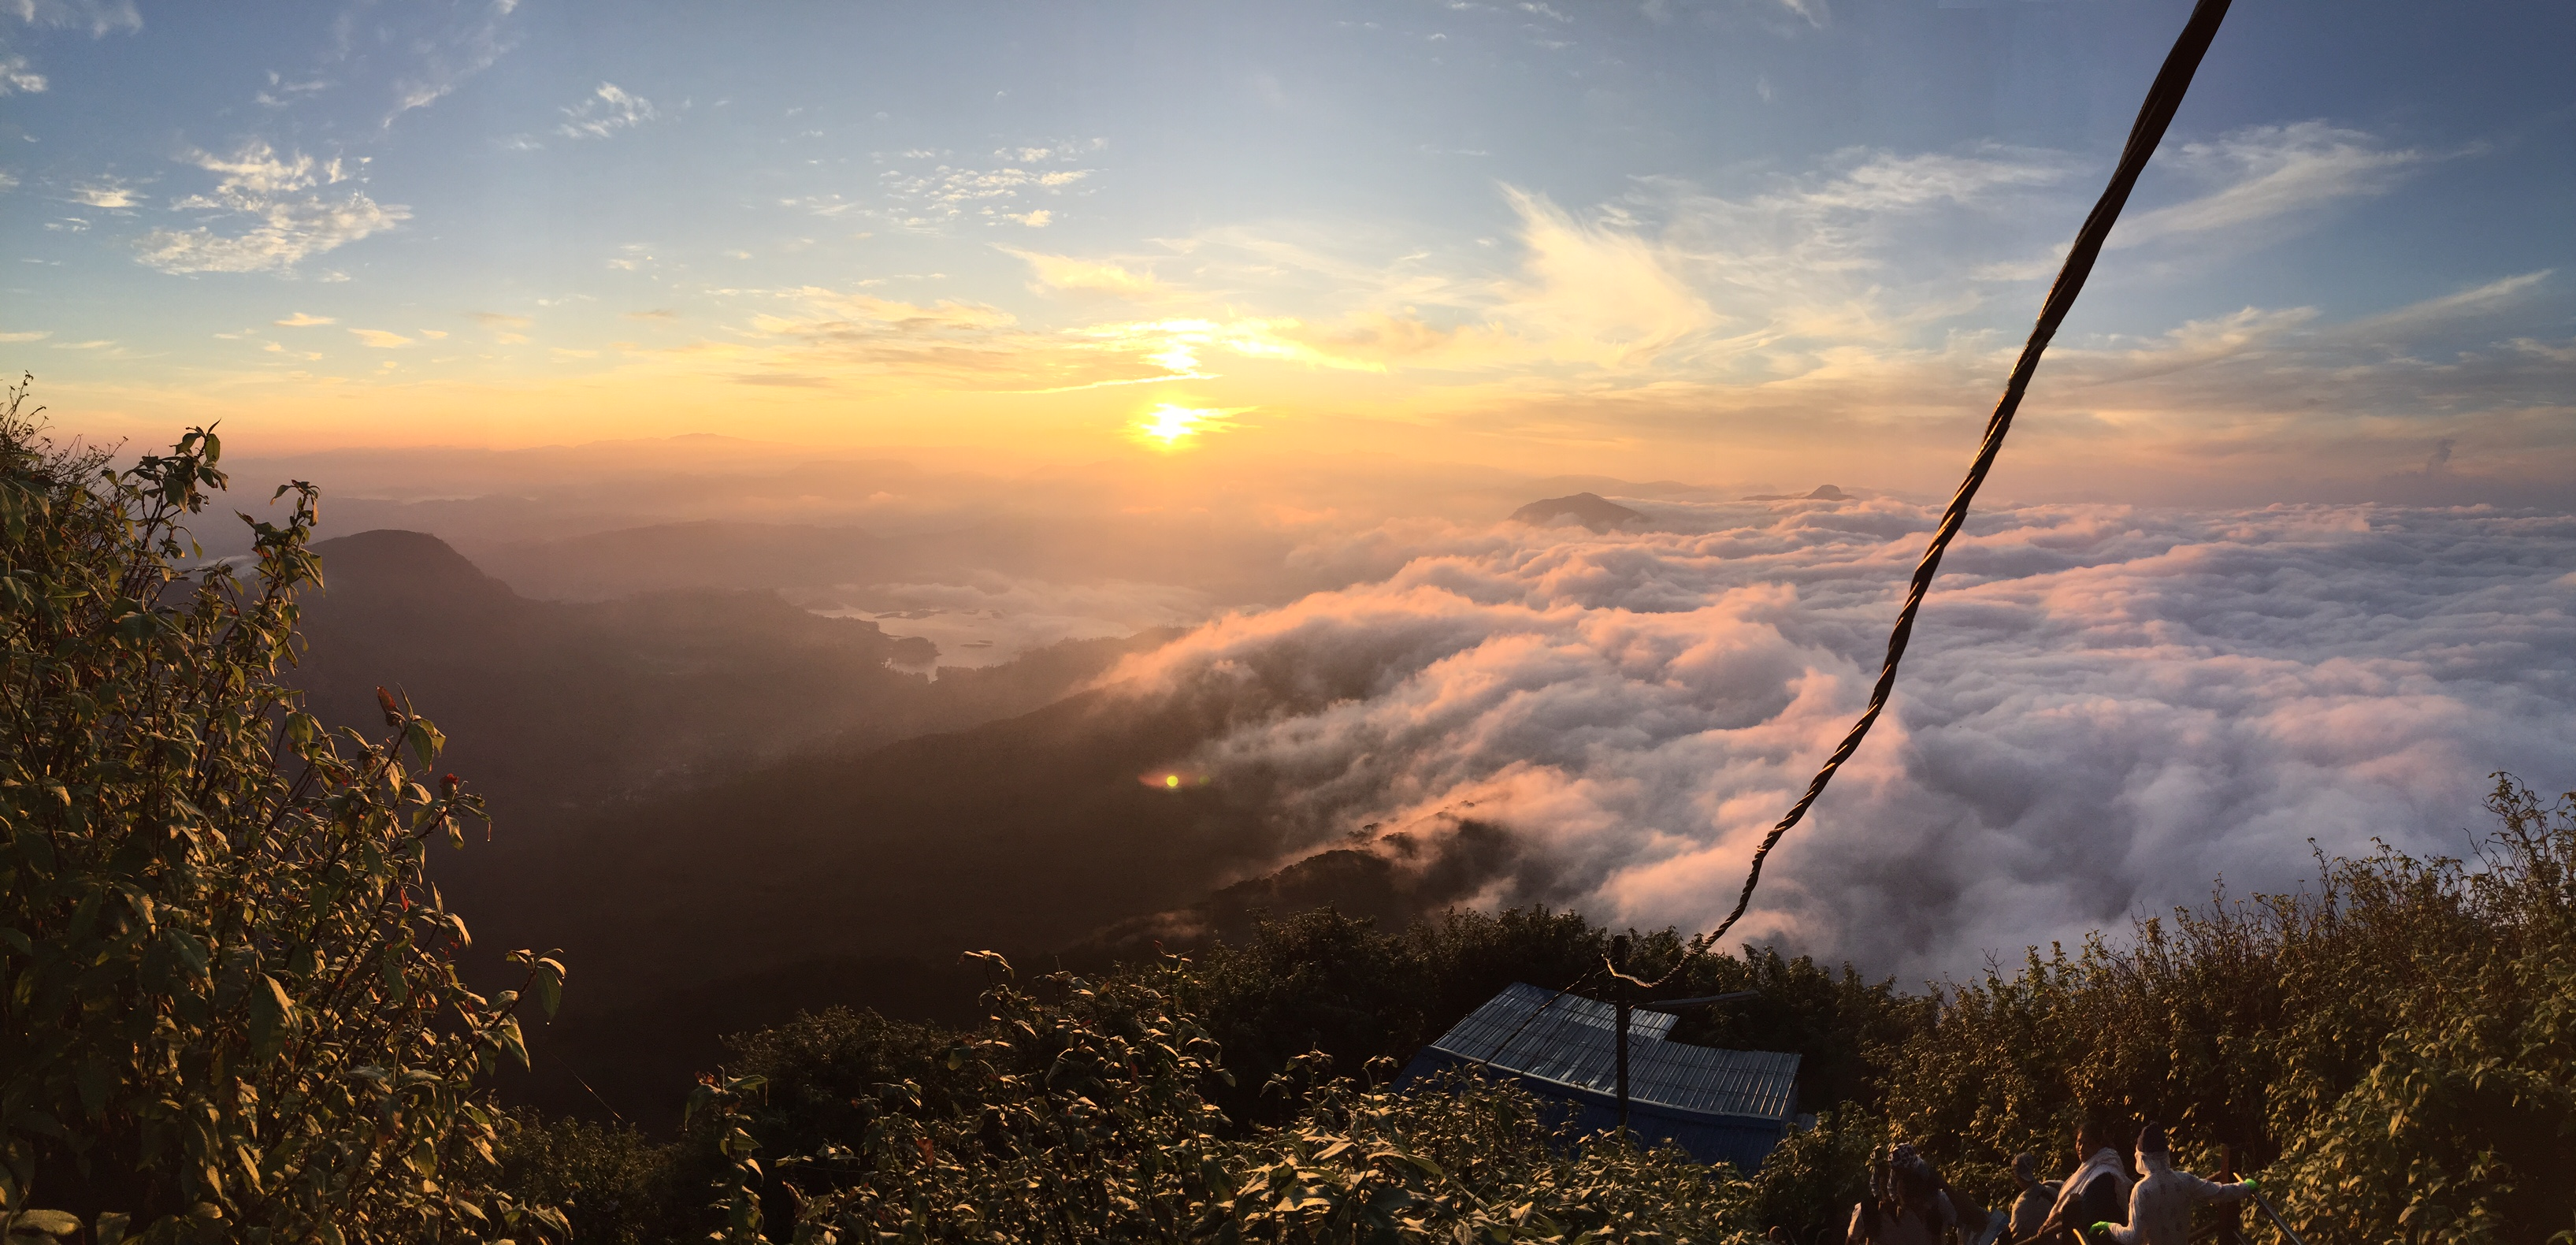 Sunrise Adam's Peak Sri Lanka